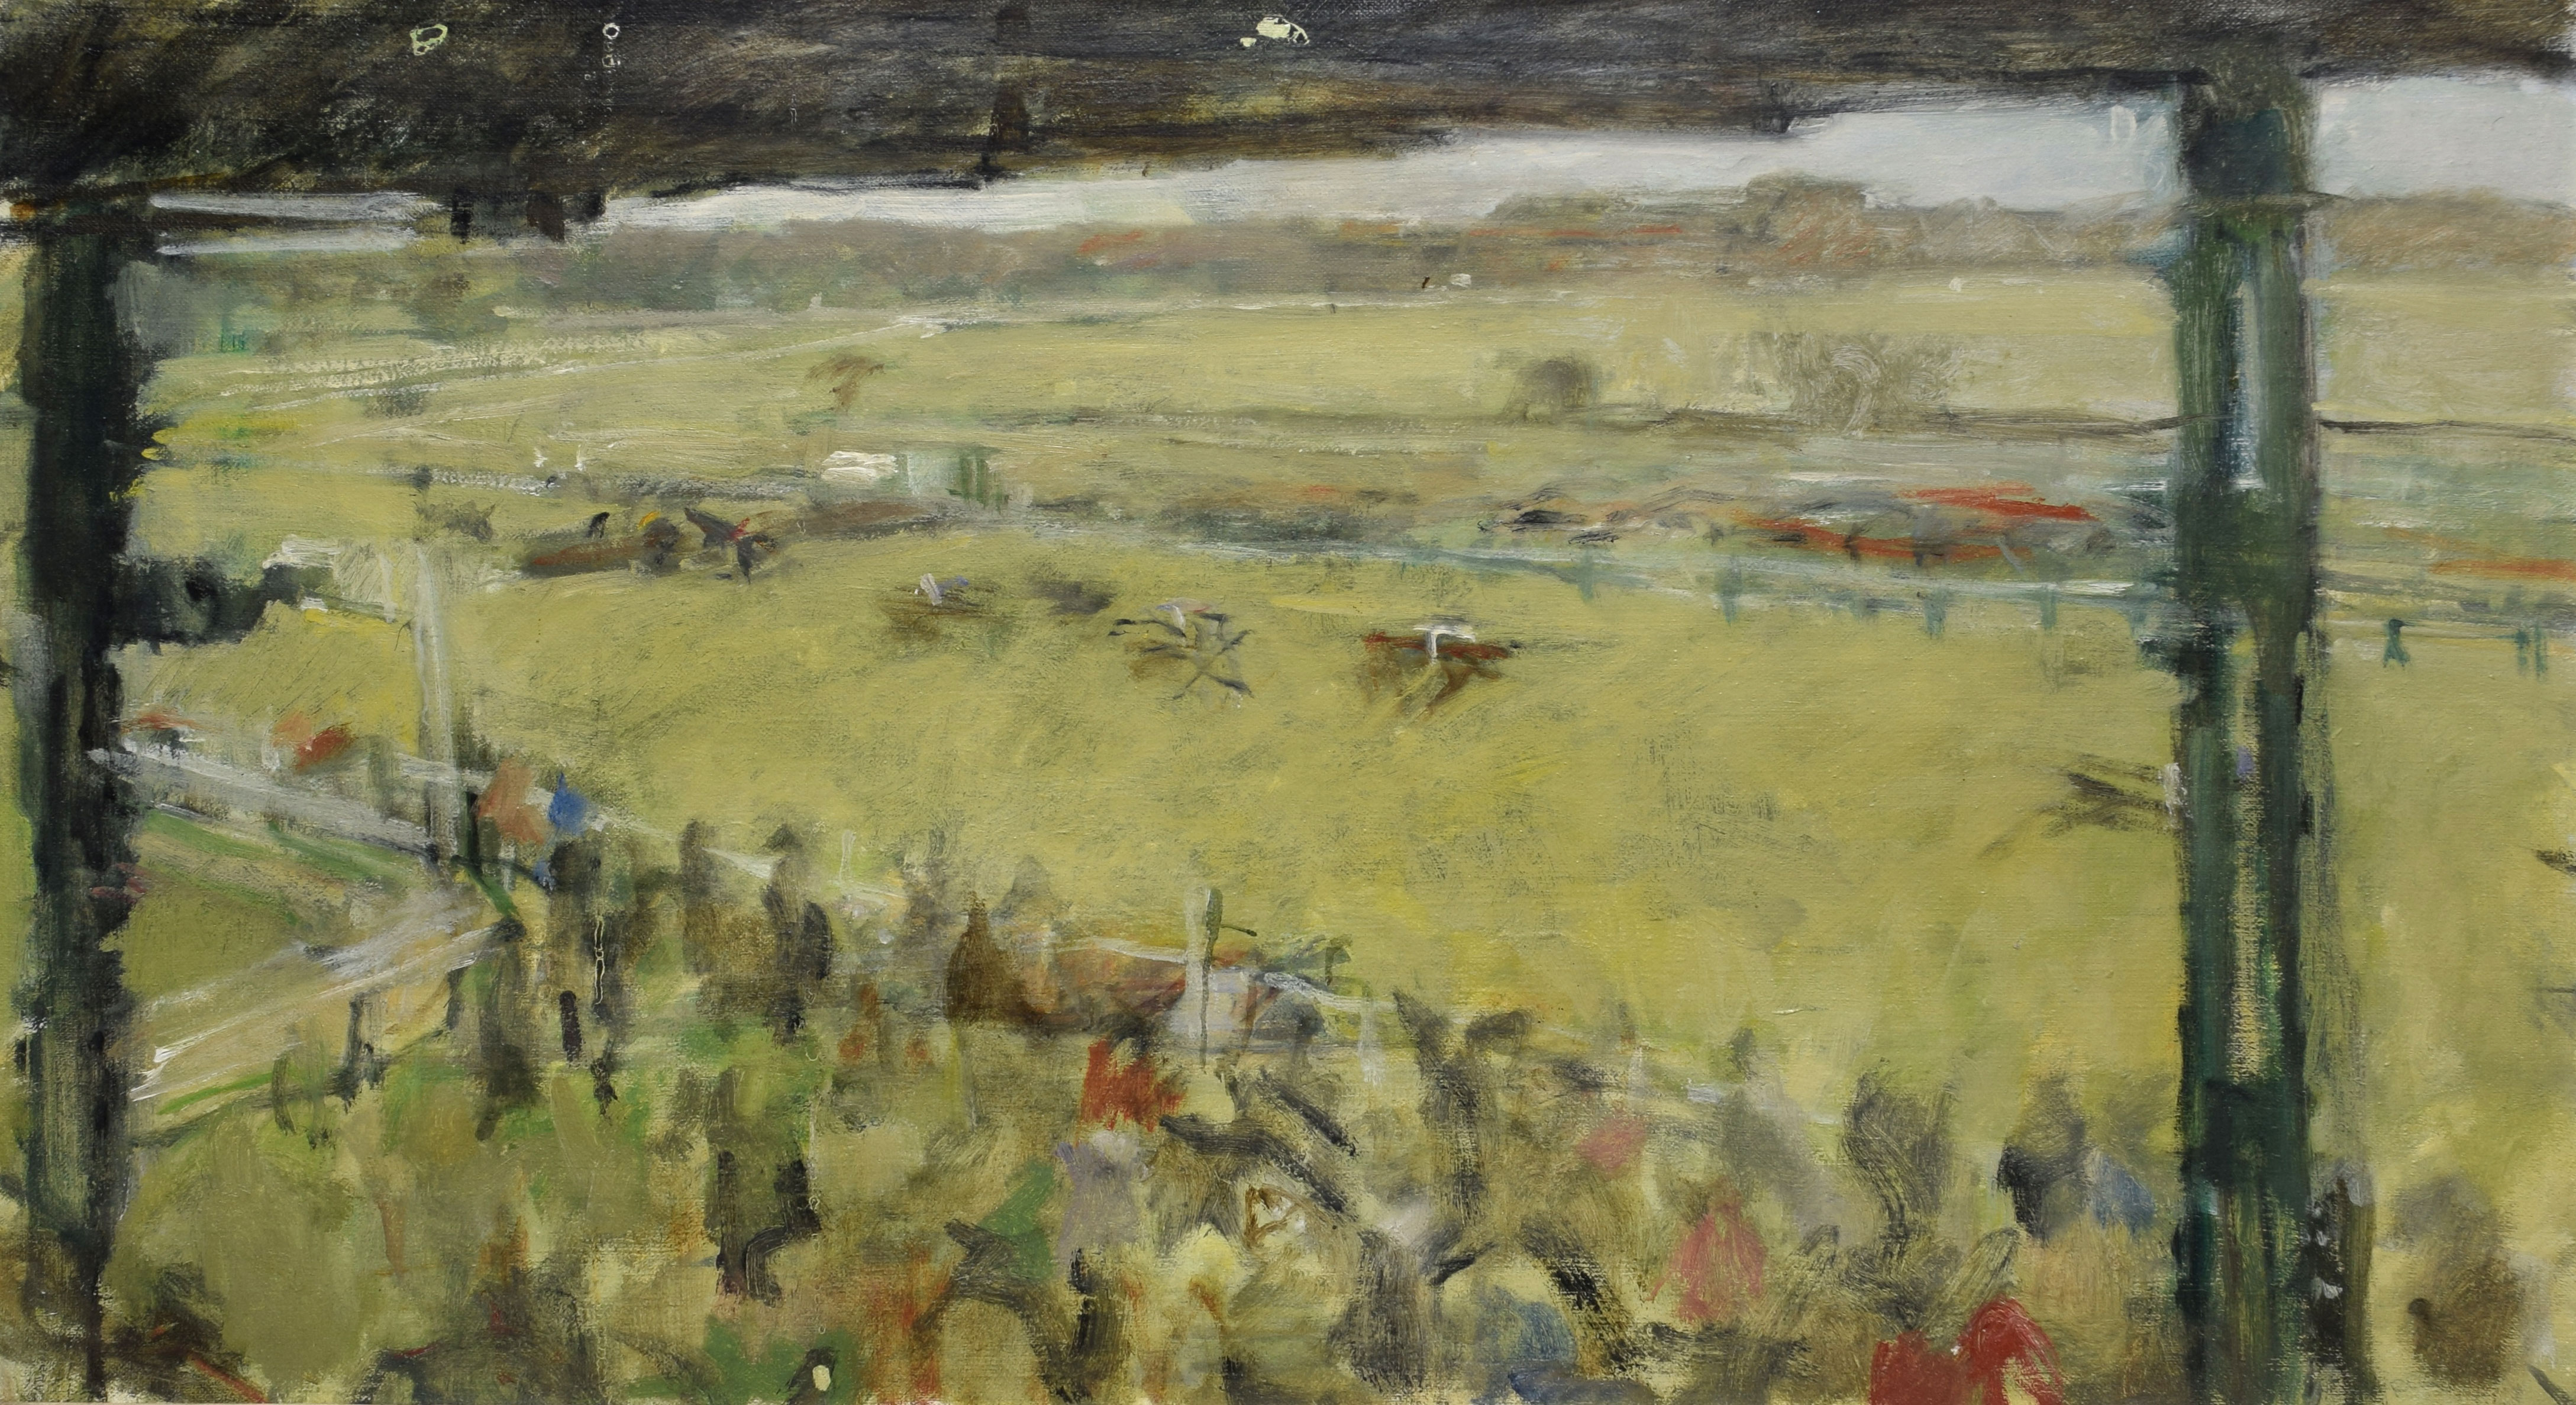 •AR Dick Lee (1923-2001), Fakenham races, oil on canvas, indistinctly signed lower right, 40 x 60cm